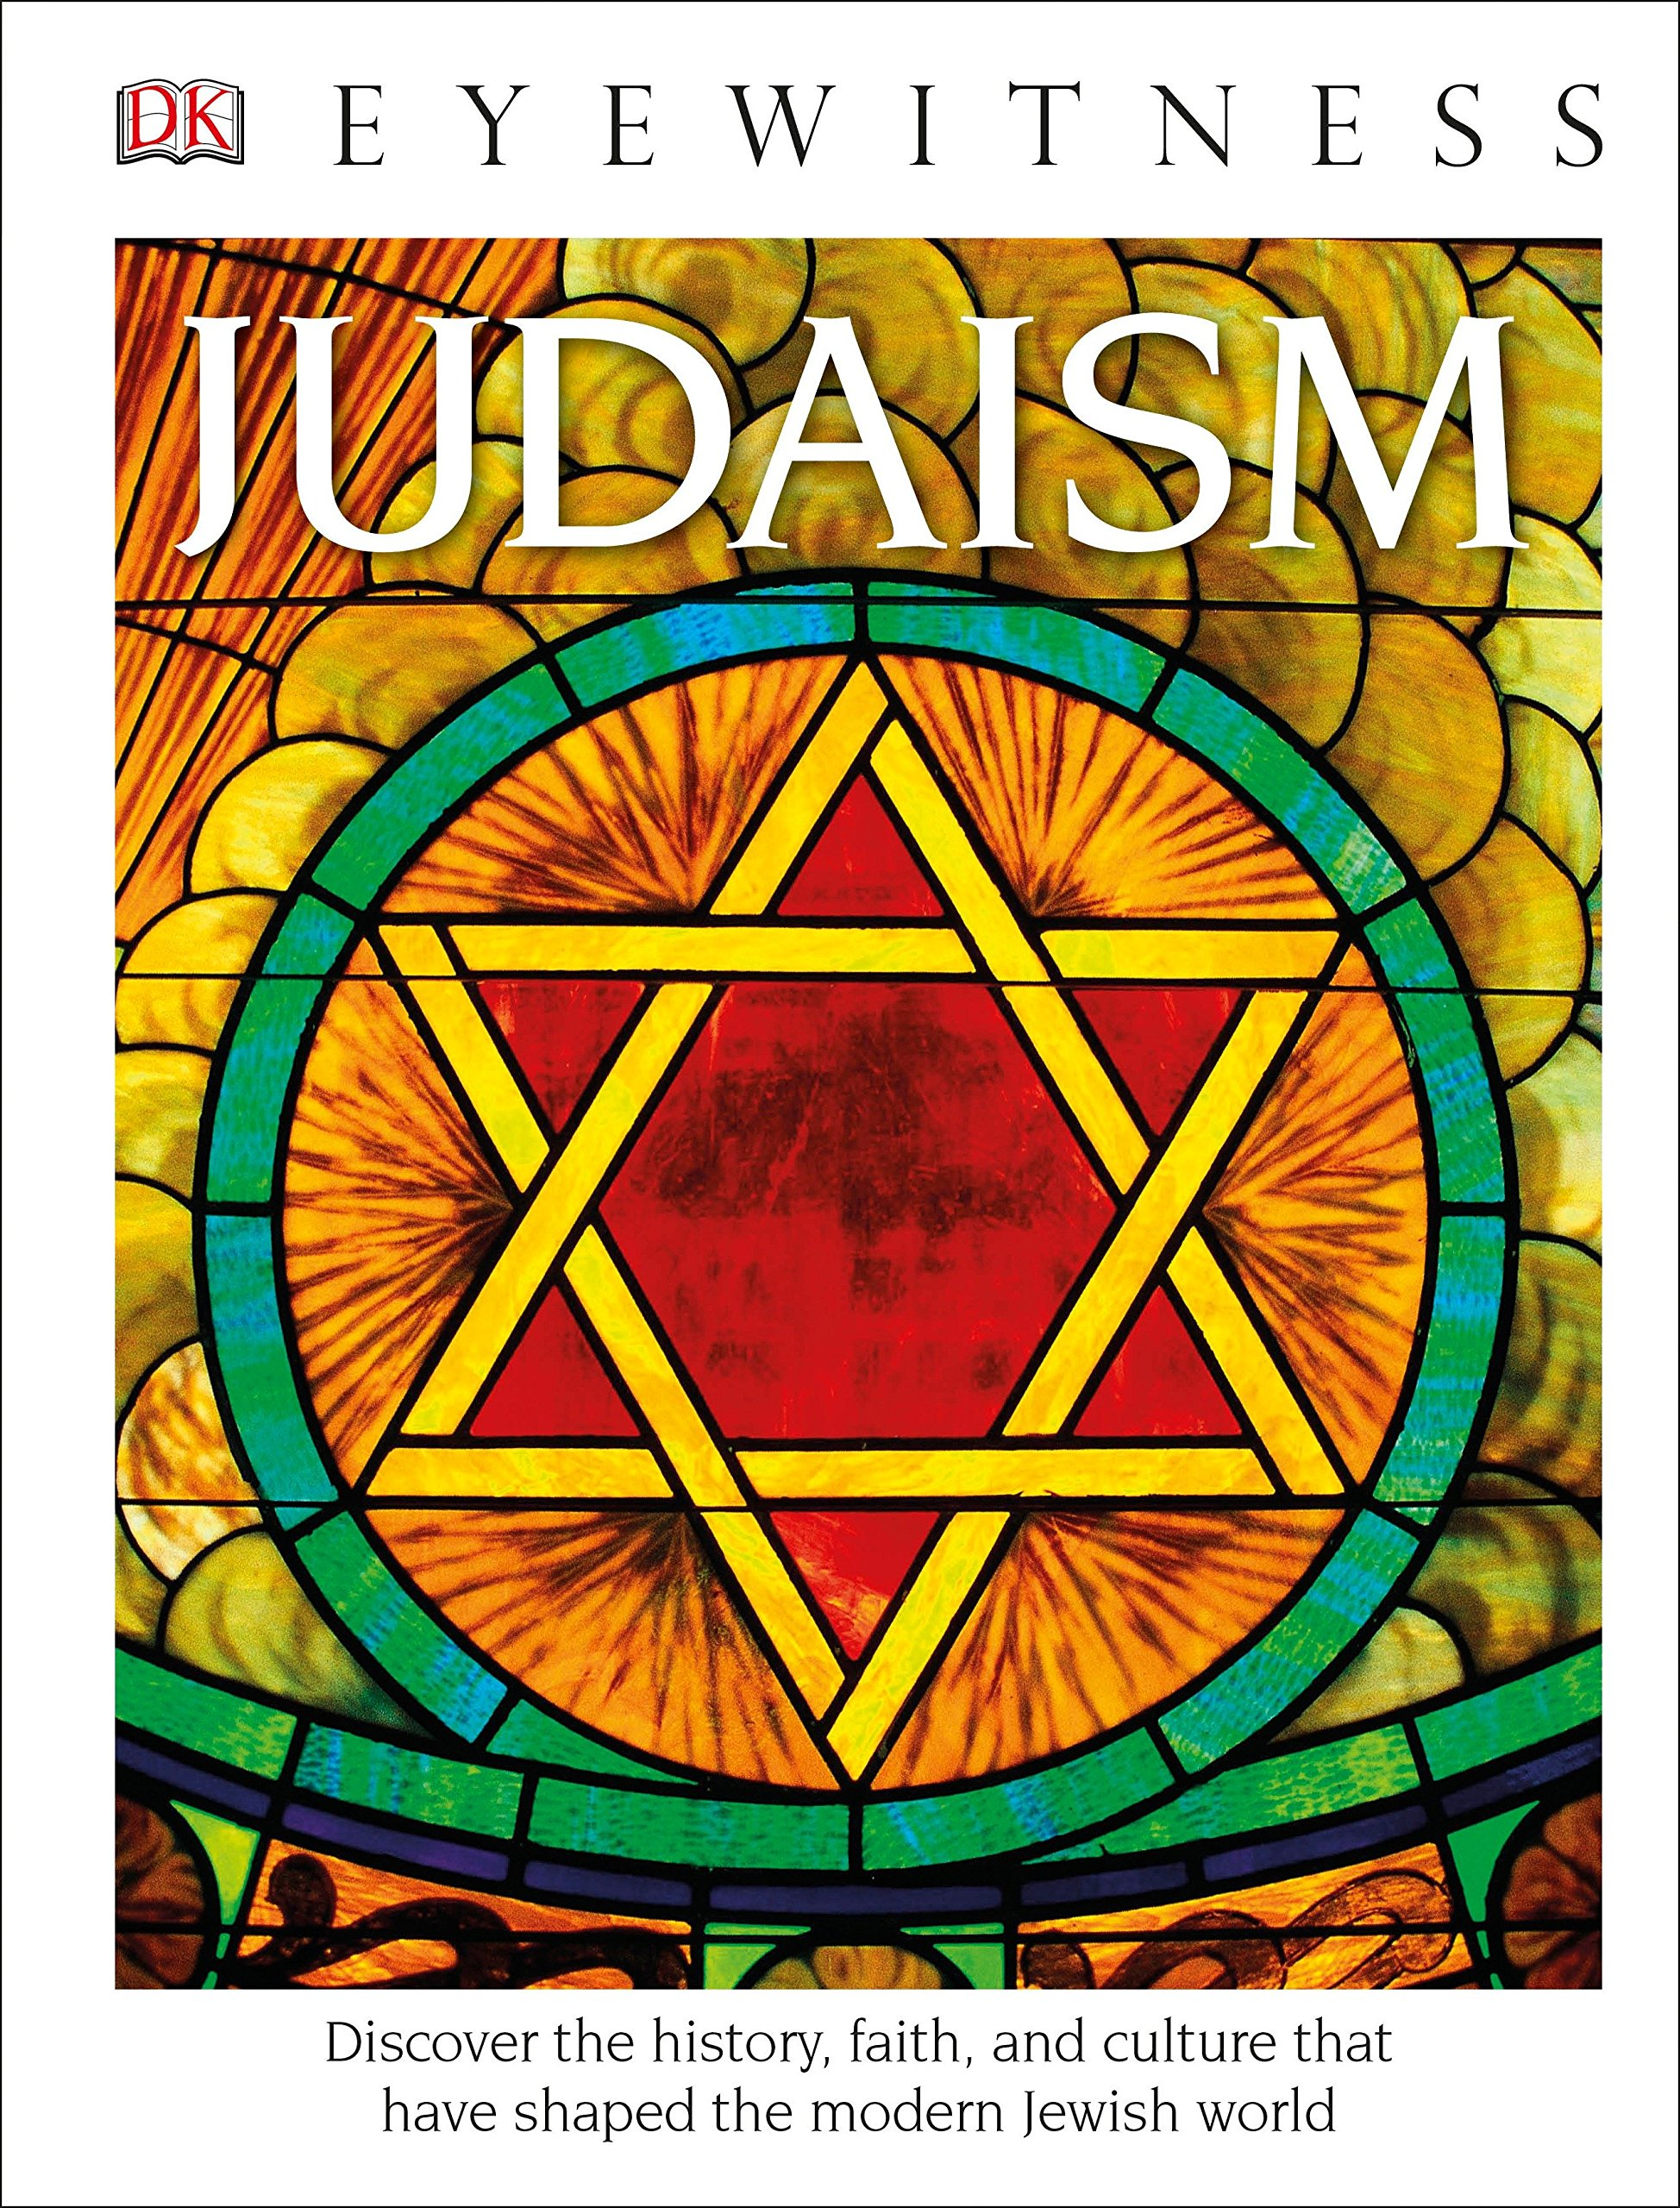 DK Eyewitness Books: Judaism (Library Edition)